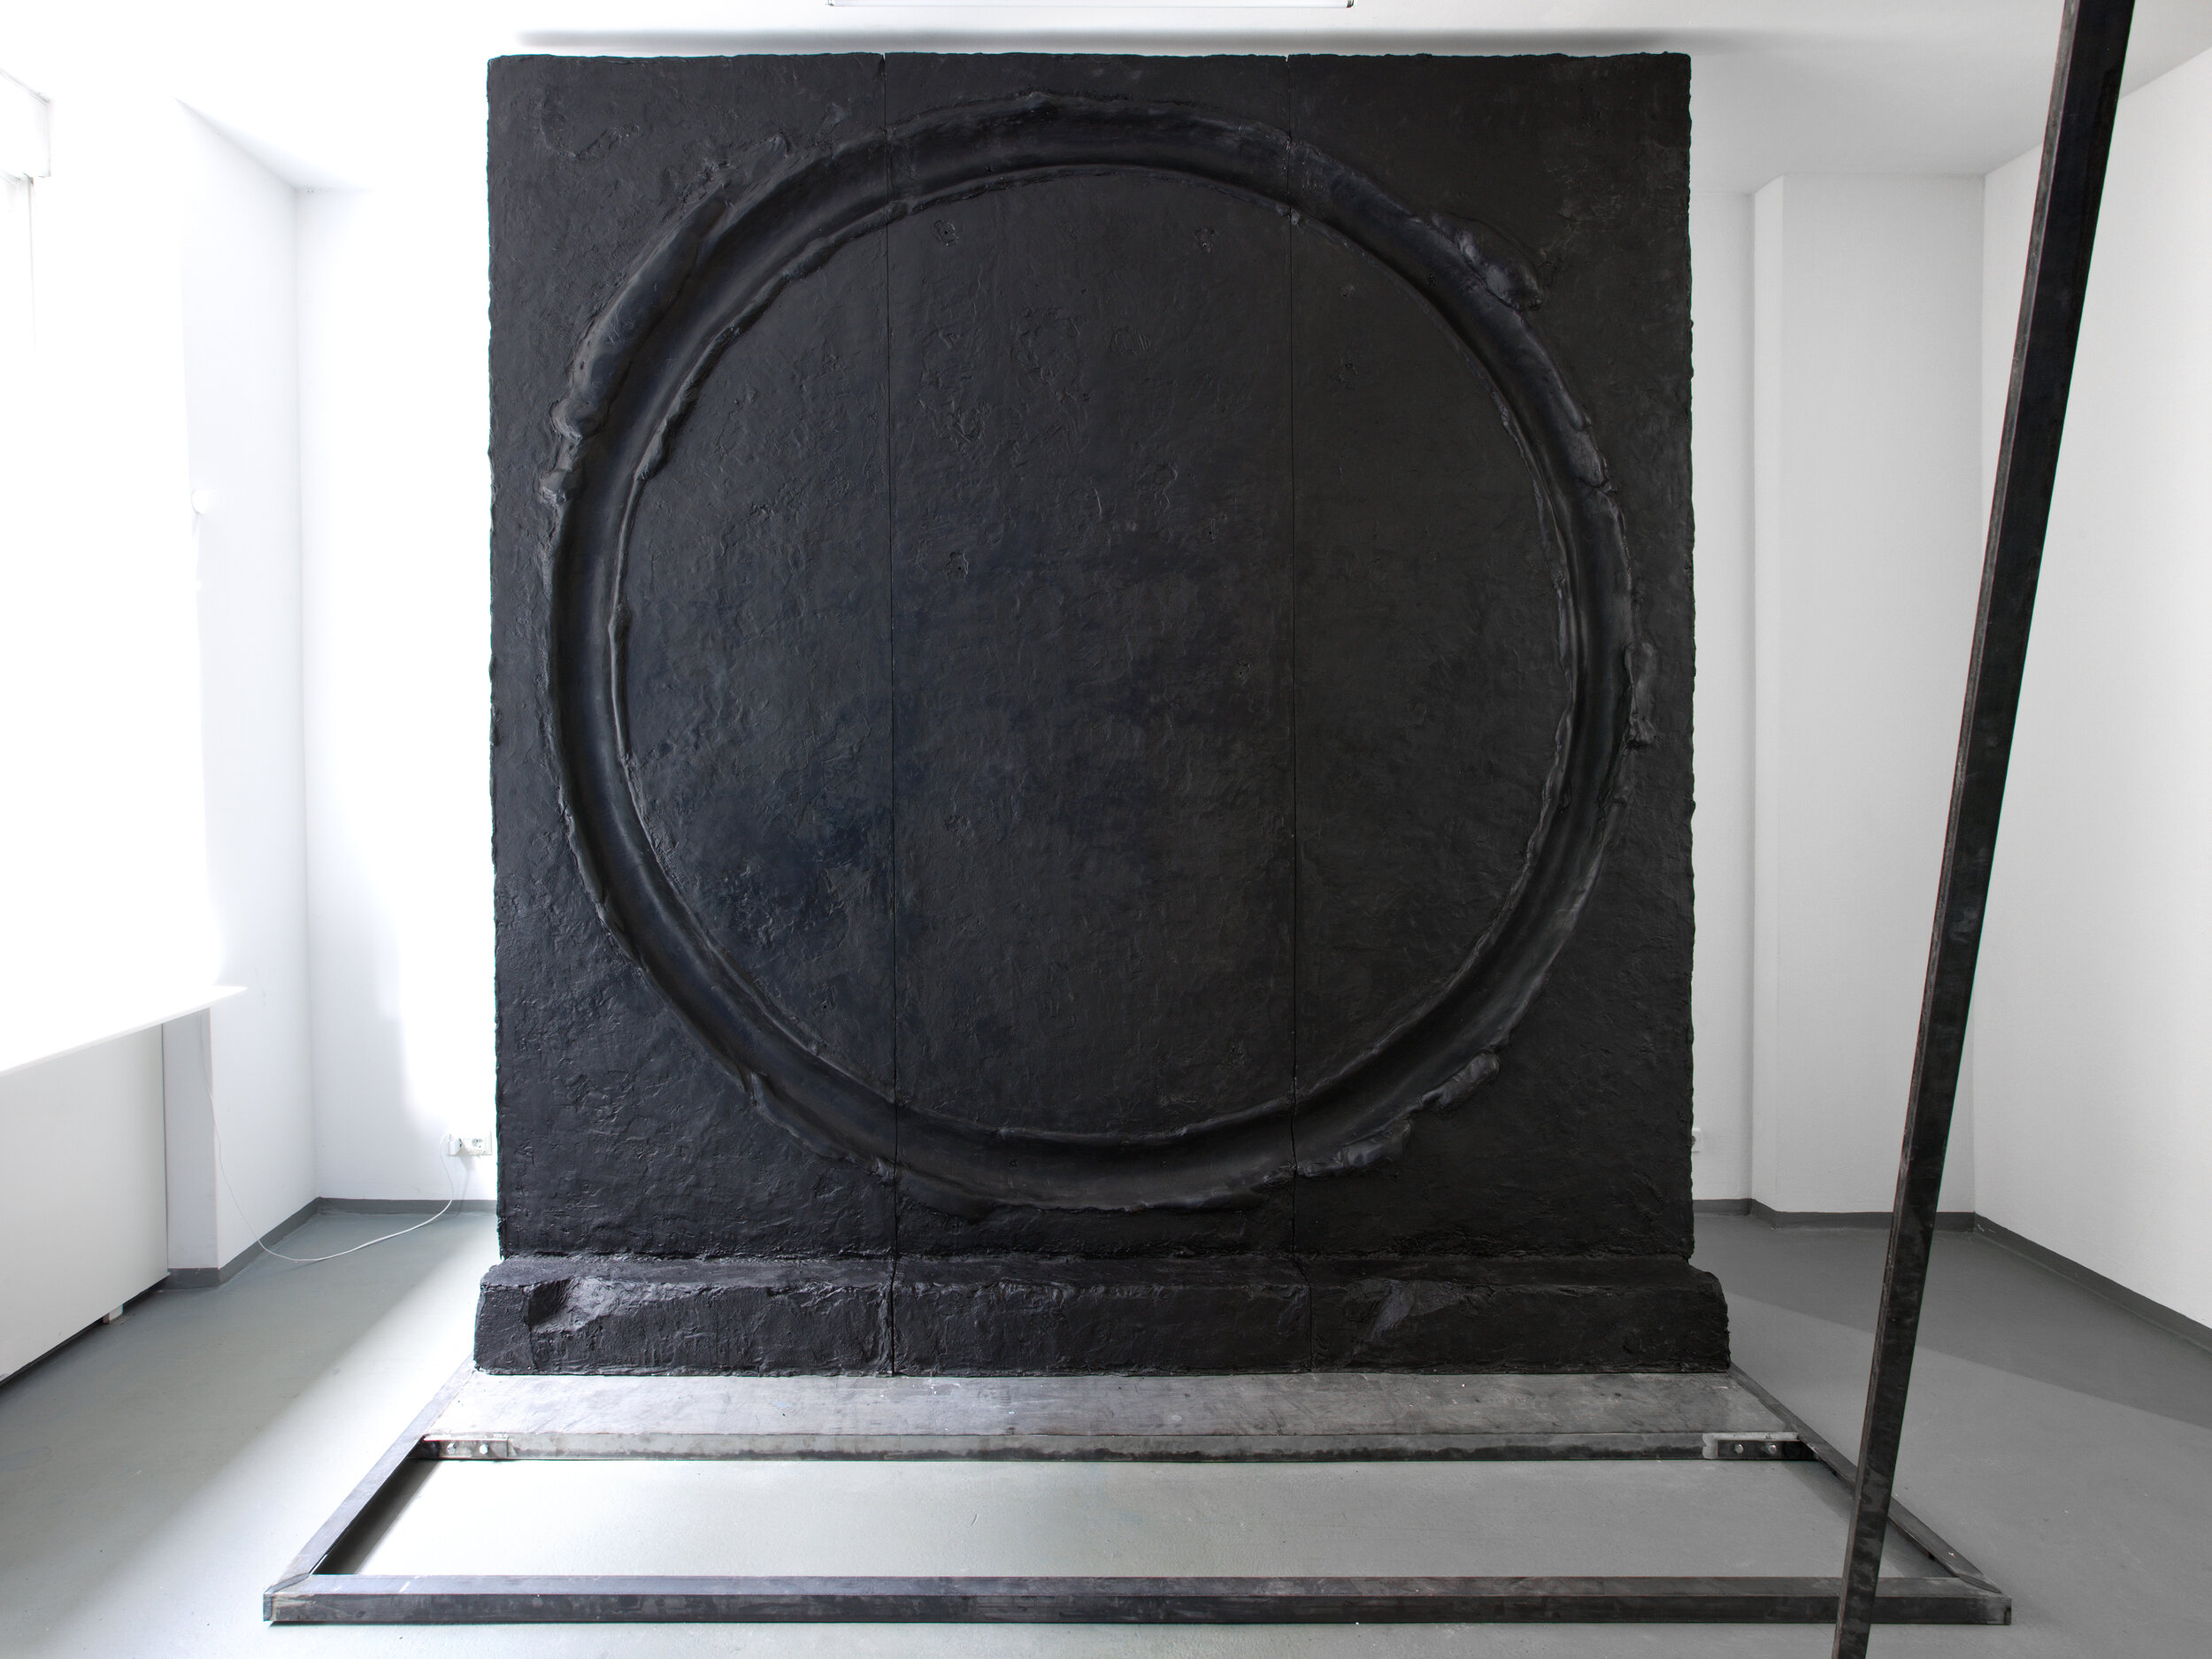 Circle , installation view, epoxy resin + metal, 128 x 122 x 74 inches, Diskurs Berlin, Berlin 2019